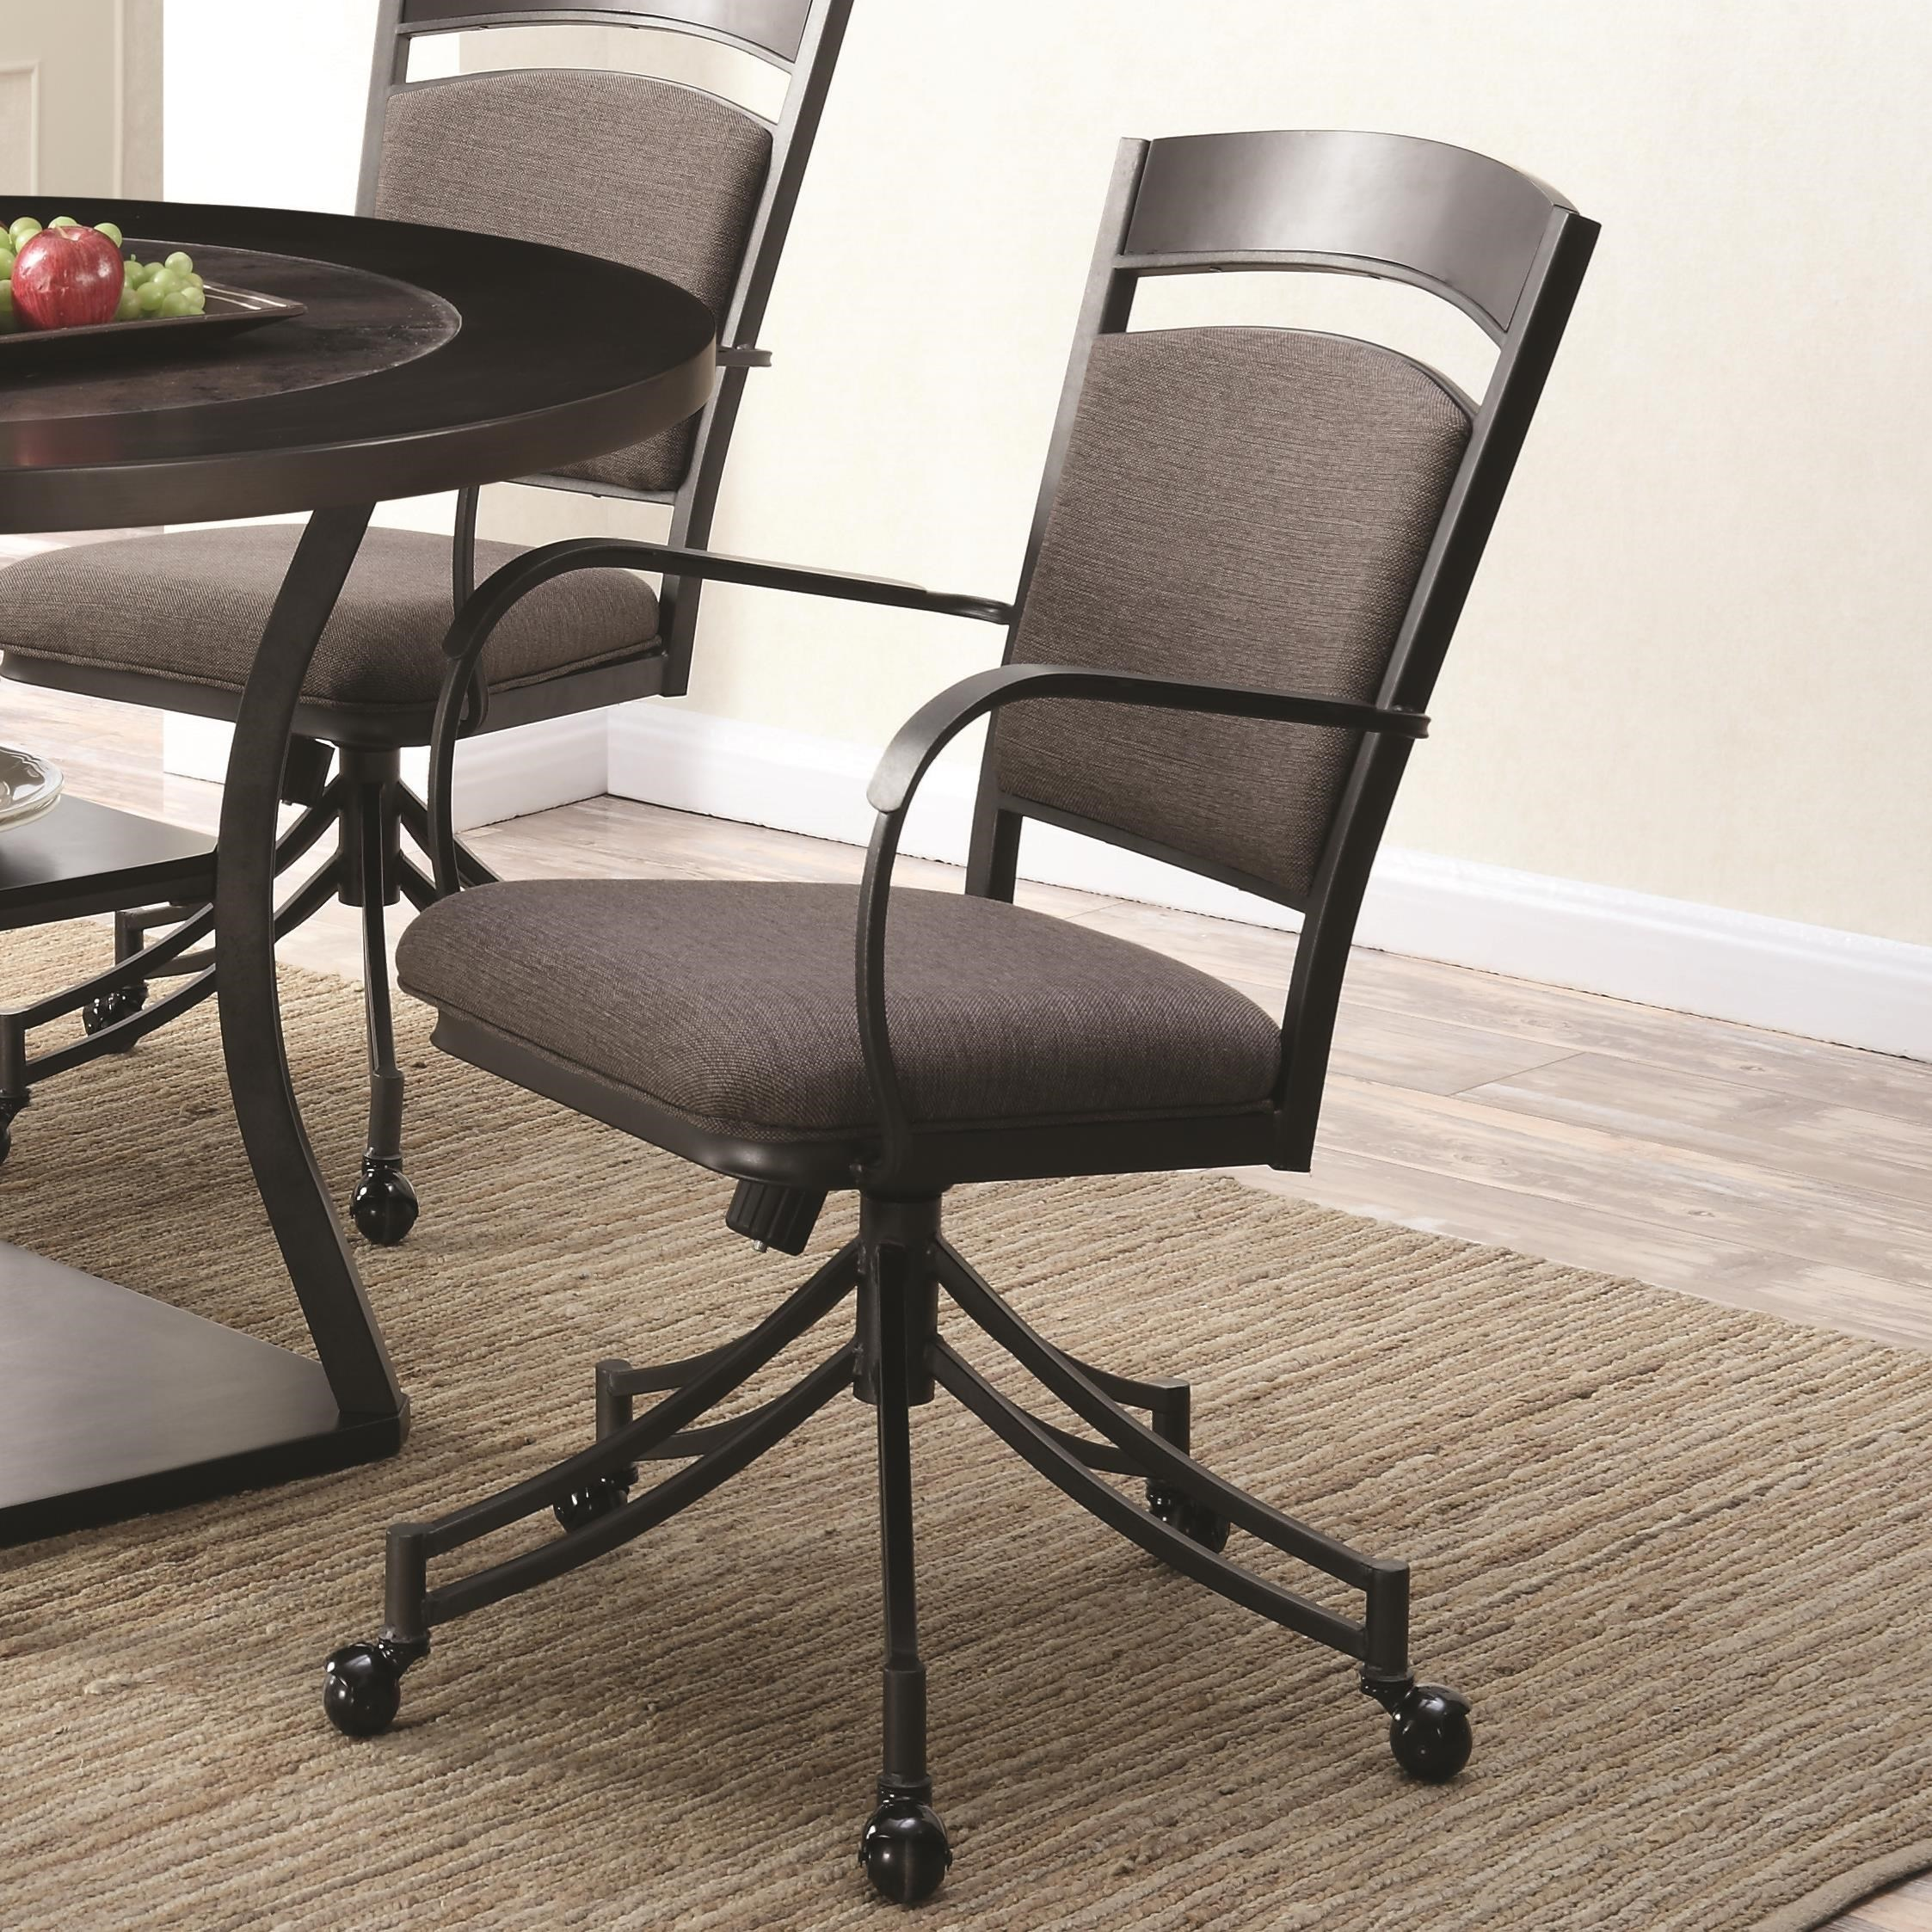 Coaster Ferdinand Upholstered Dining Chair - Item Number: 105642